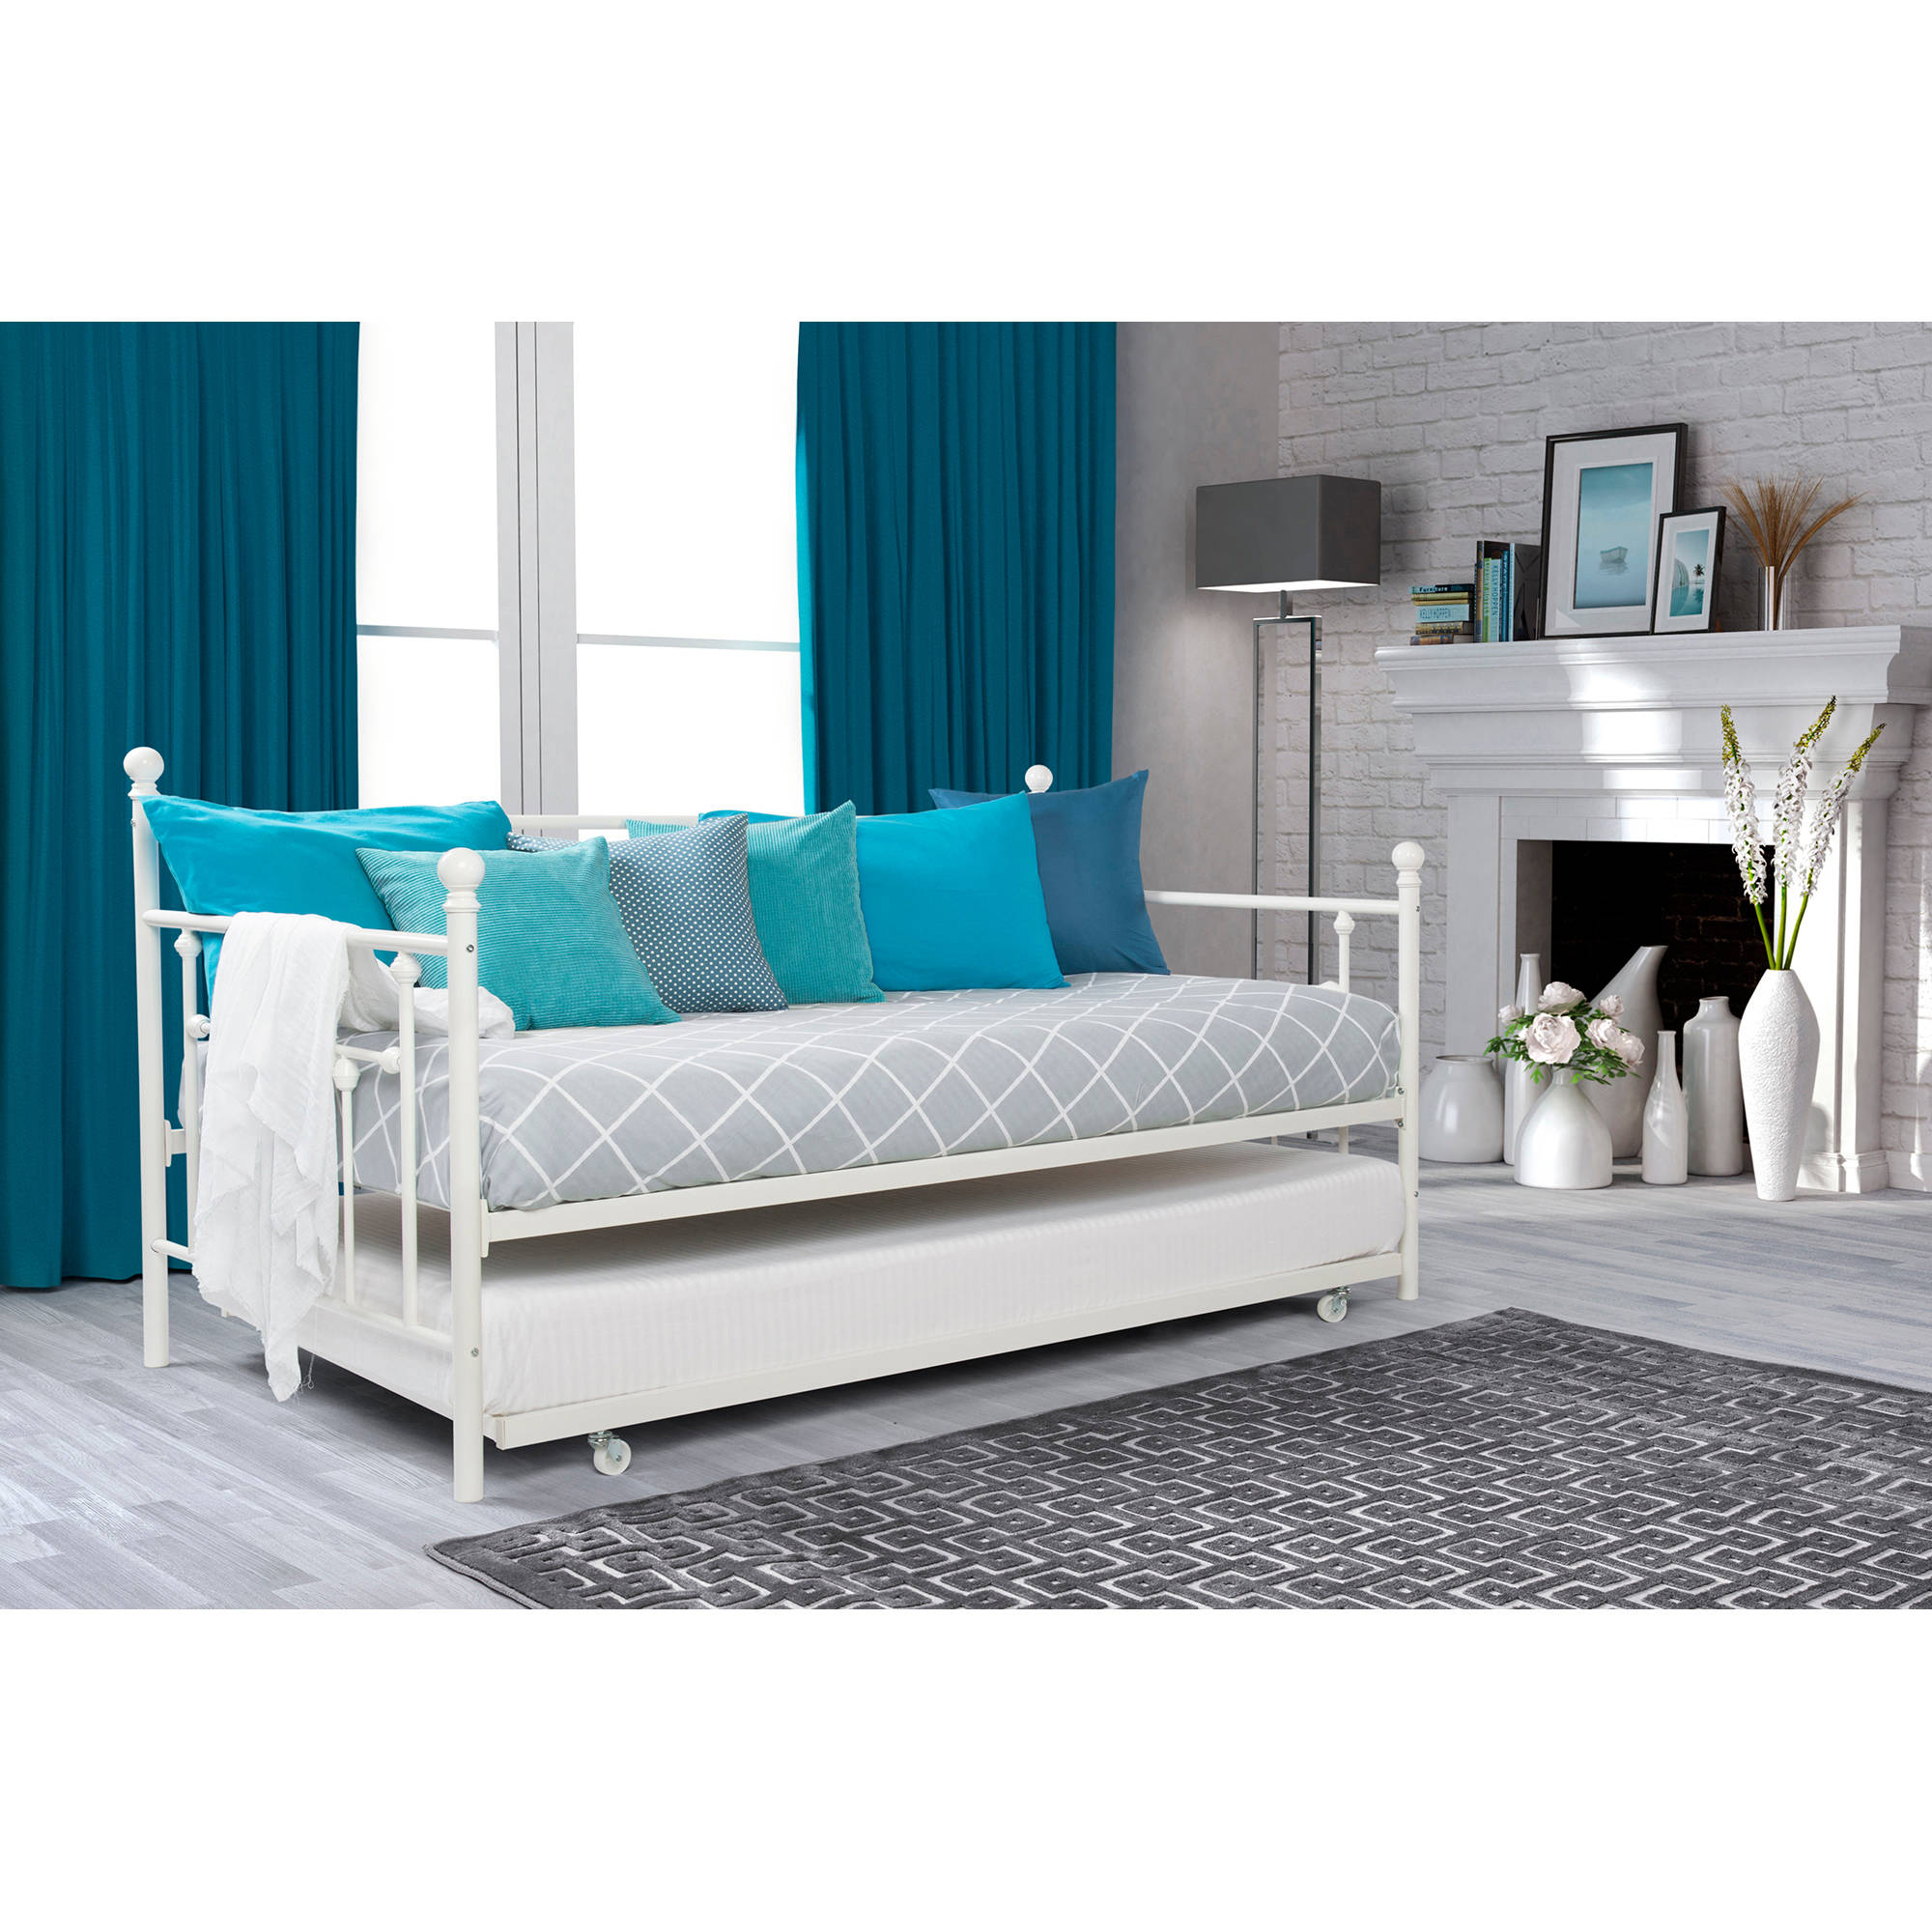 Chic day bed dhp manila twin daybed and trundle, multiple colors ccnqmth